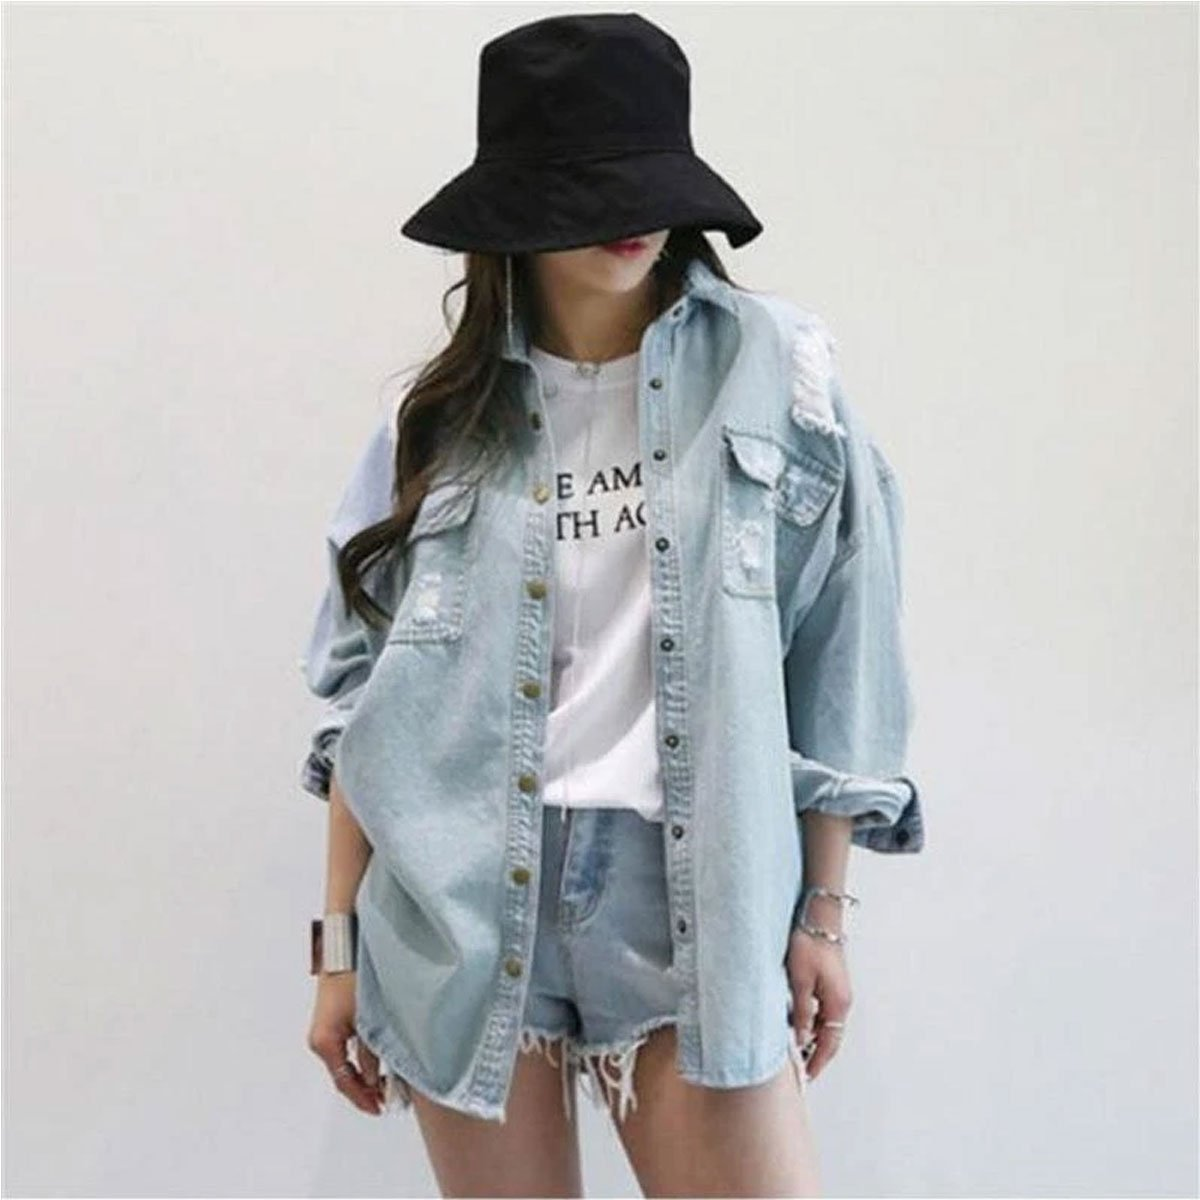 Free Size Full-Sleeves Fashionable Denim Jacket Women's Wear